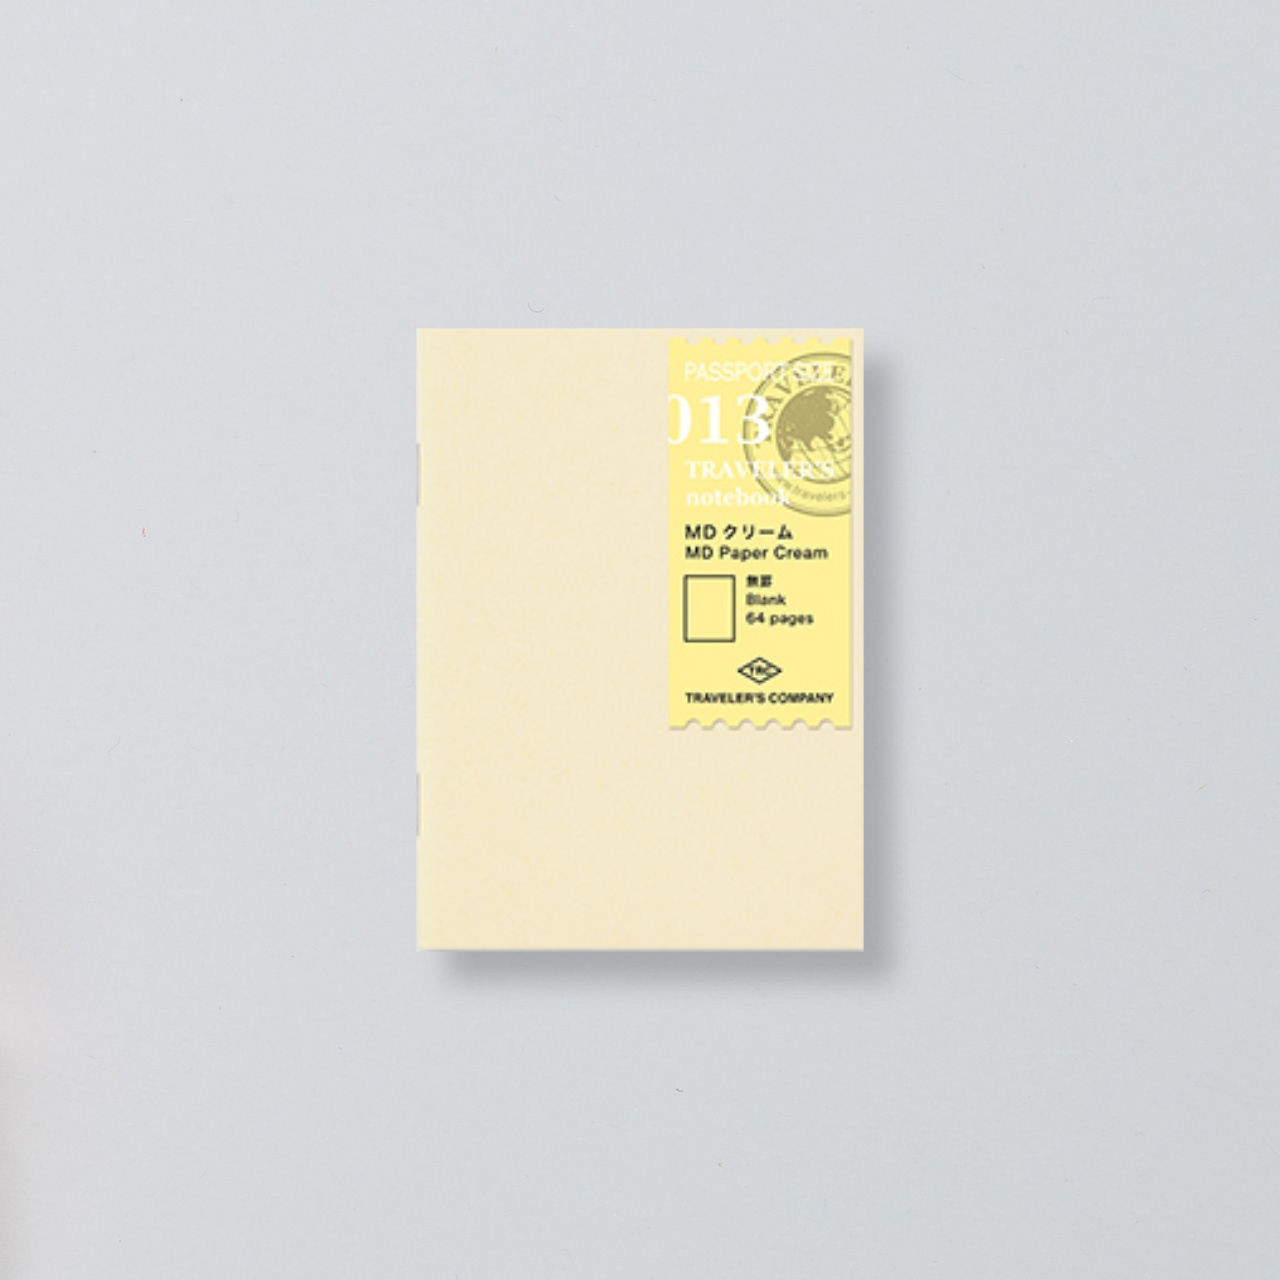 """Midori"" Traveler's Notebook Passport Size Refill ""013"" MD creme"